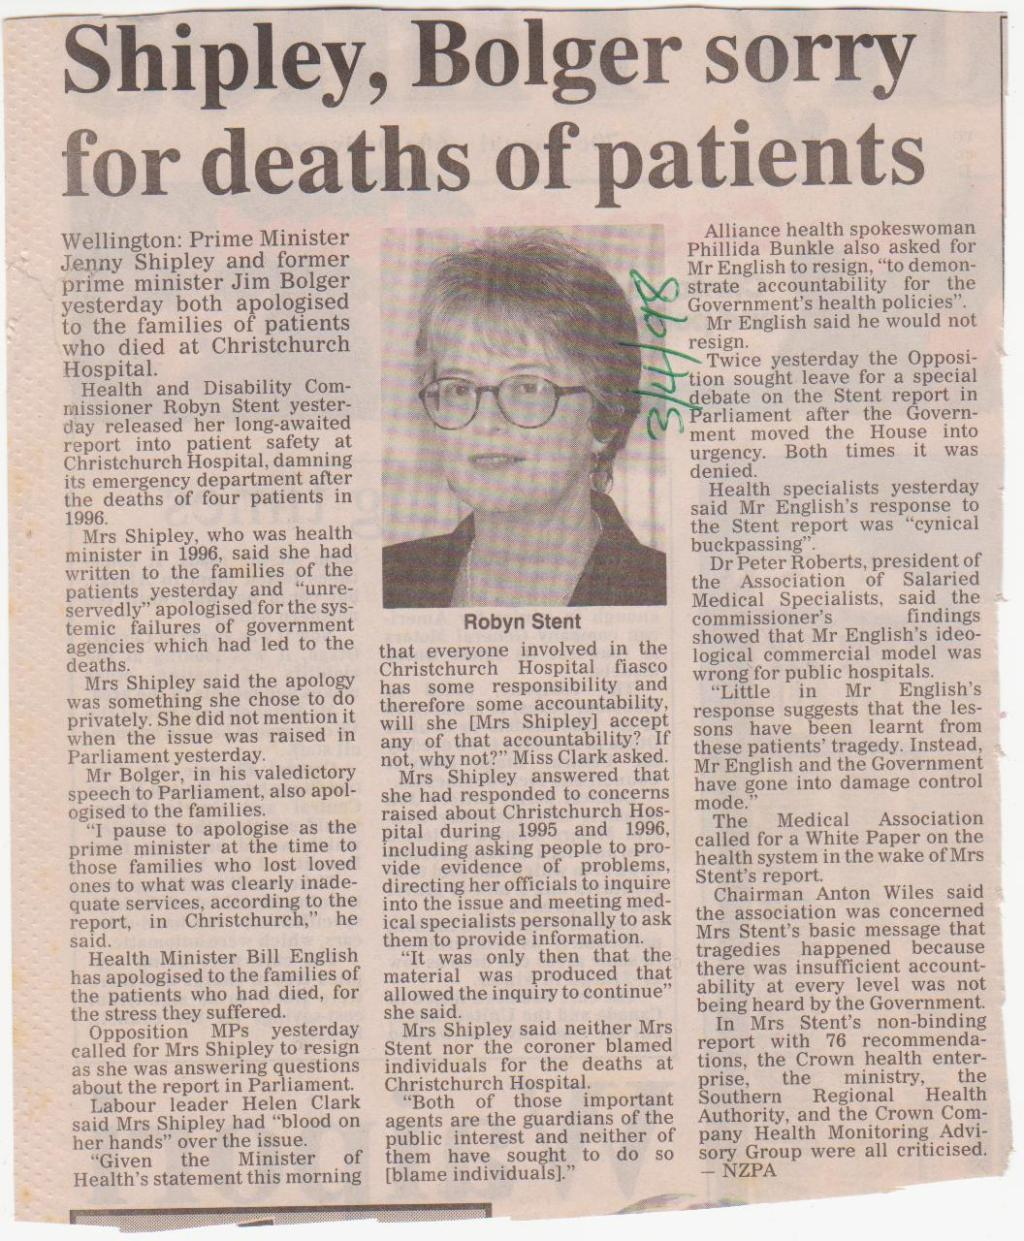 Shipley, Bolger sorry for deaths of patients - 3 April 1998